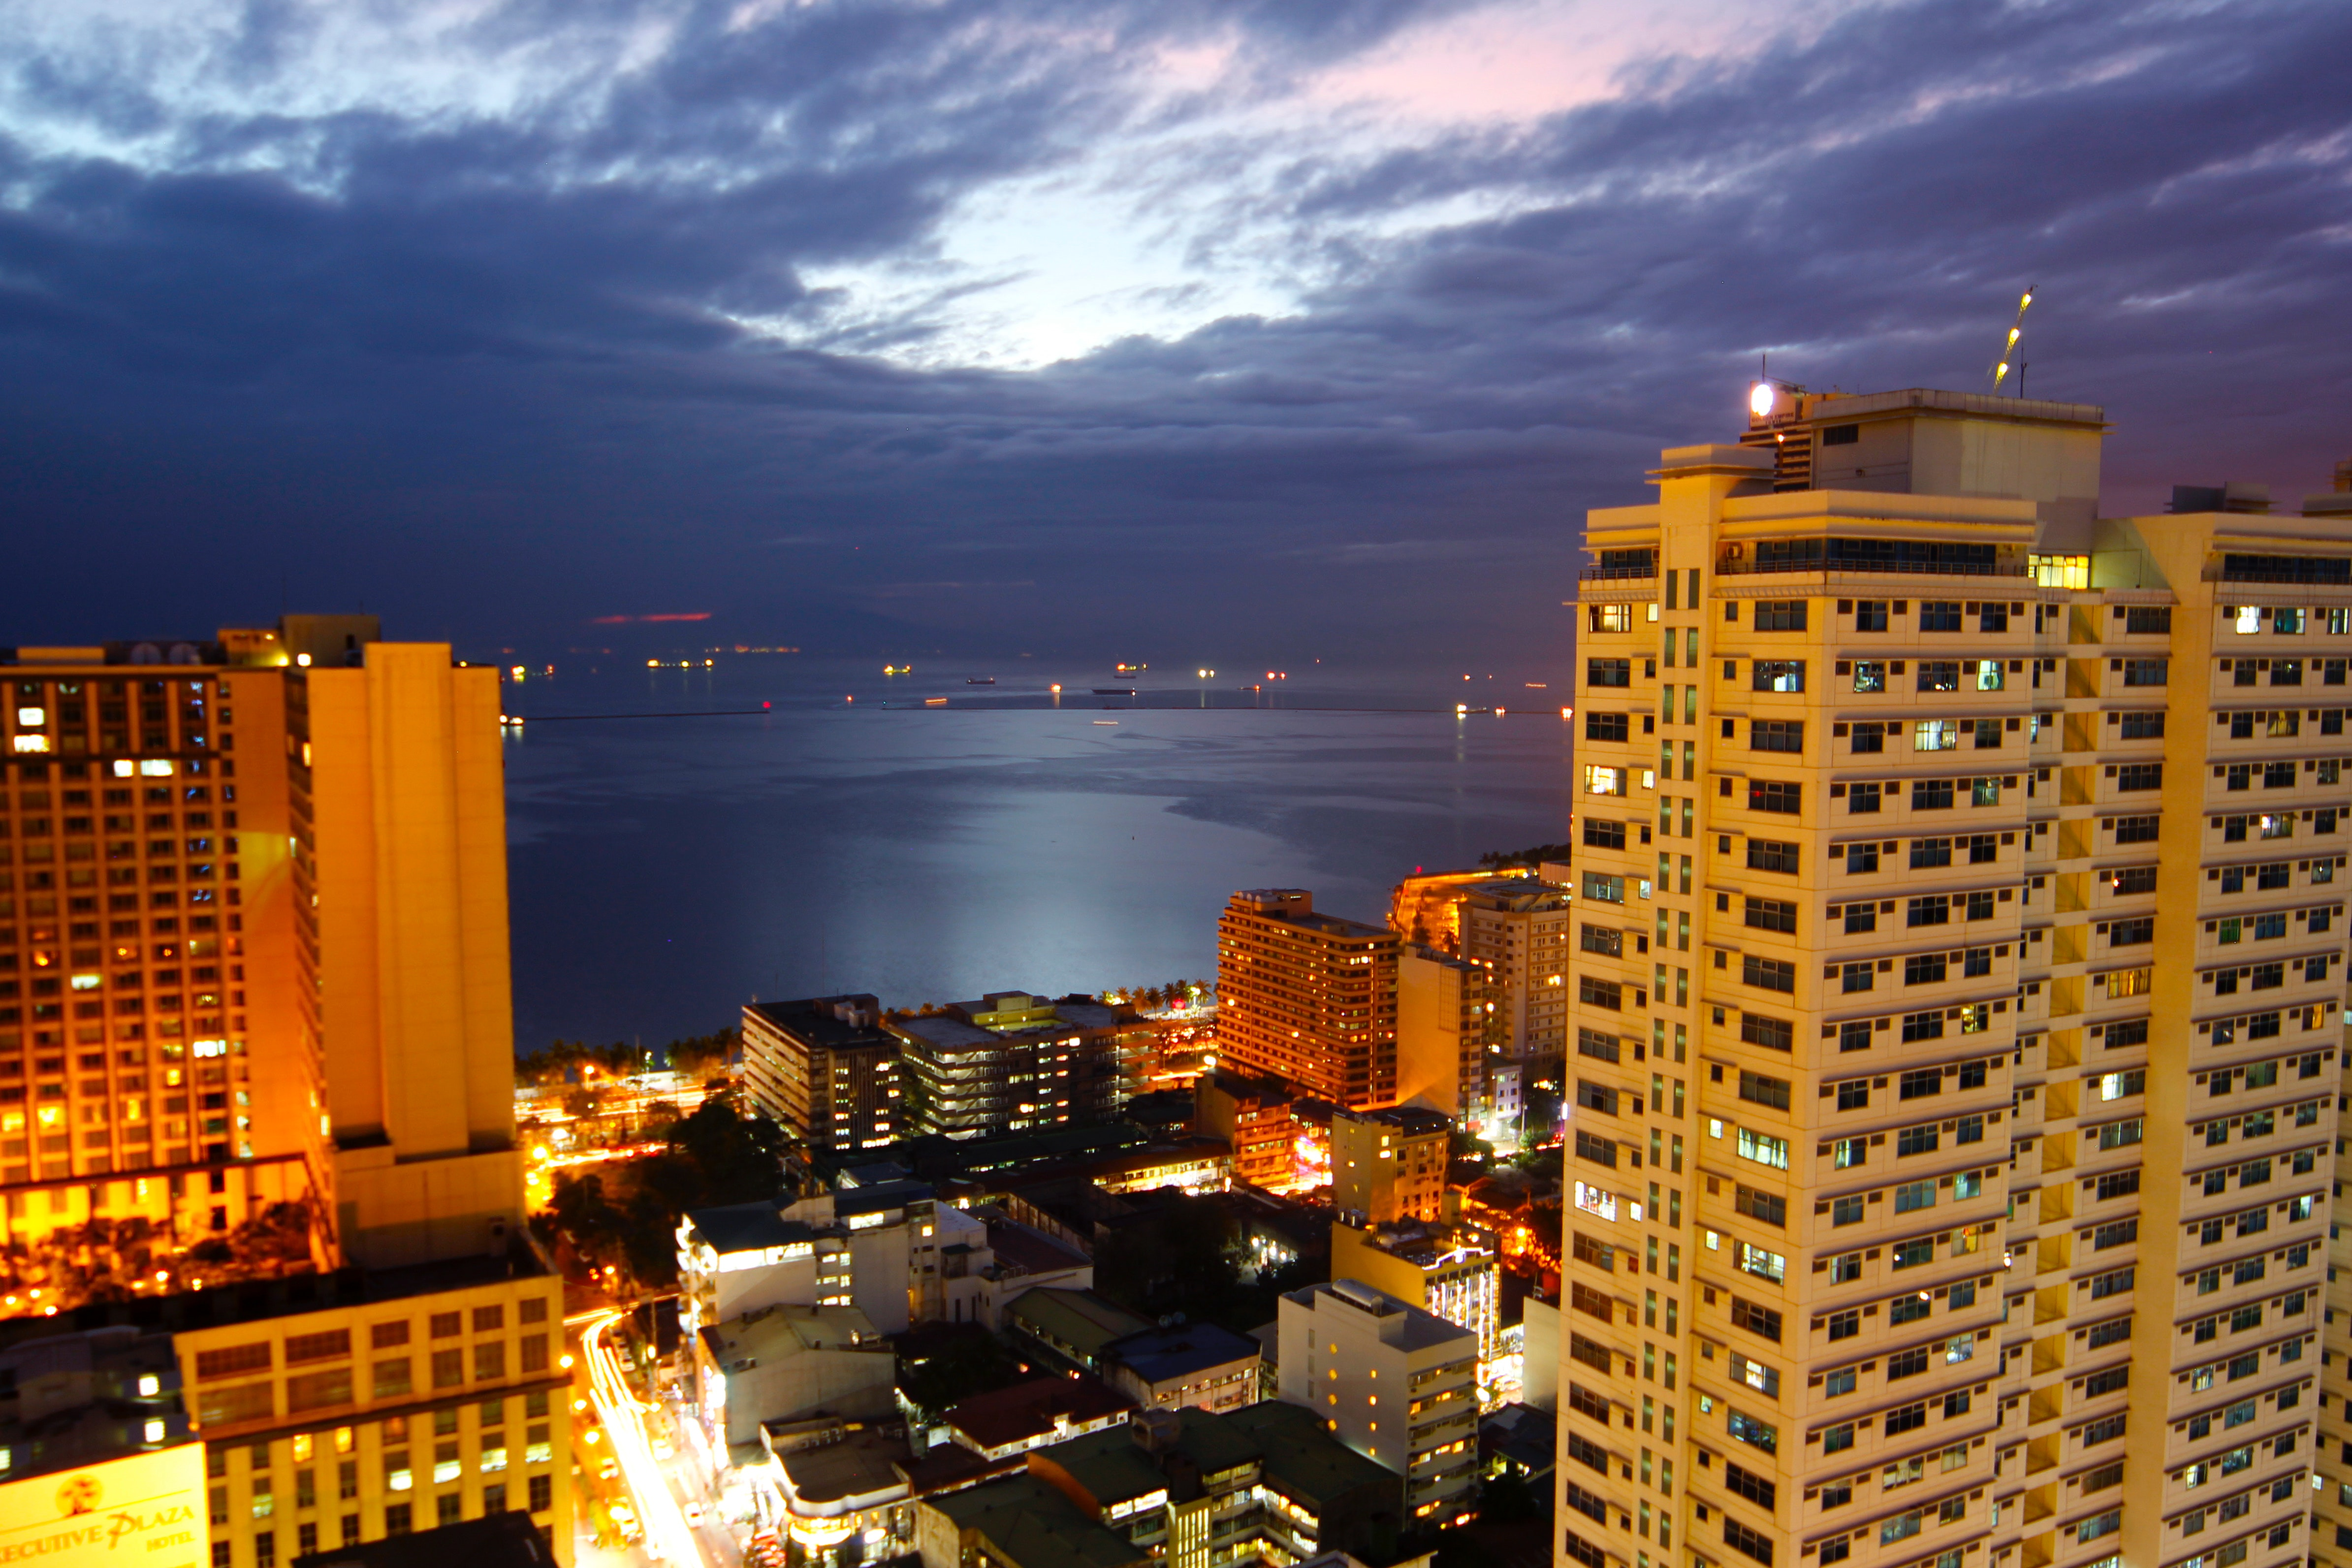 Cityscape lighted high-rise buildings beside calm body of water photo